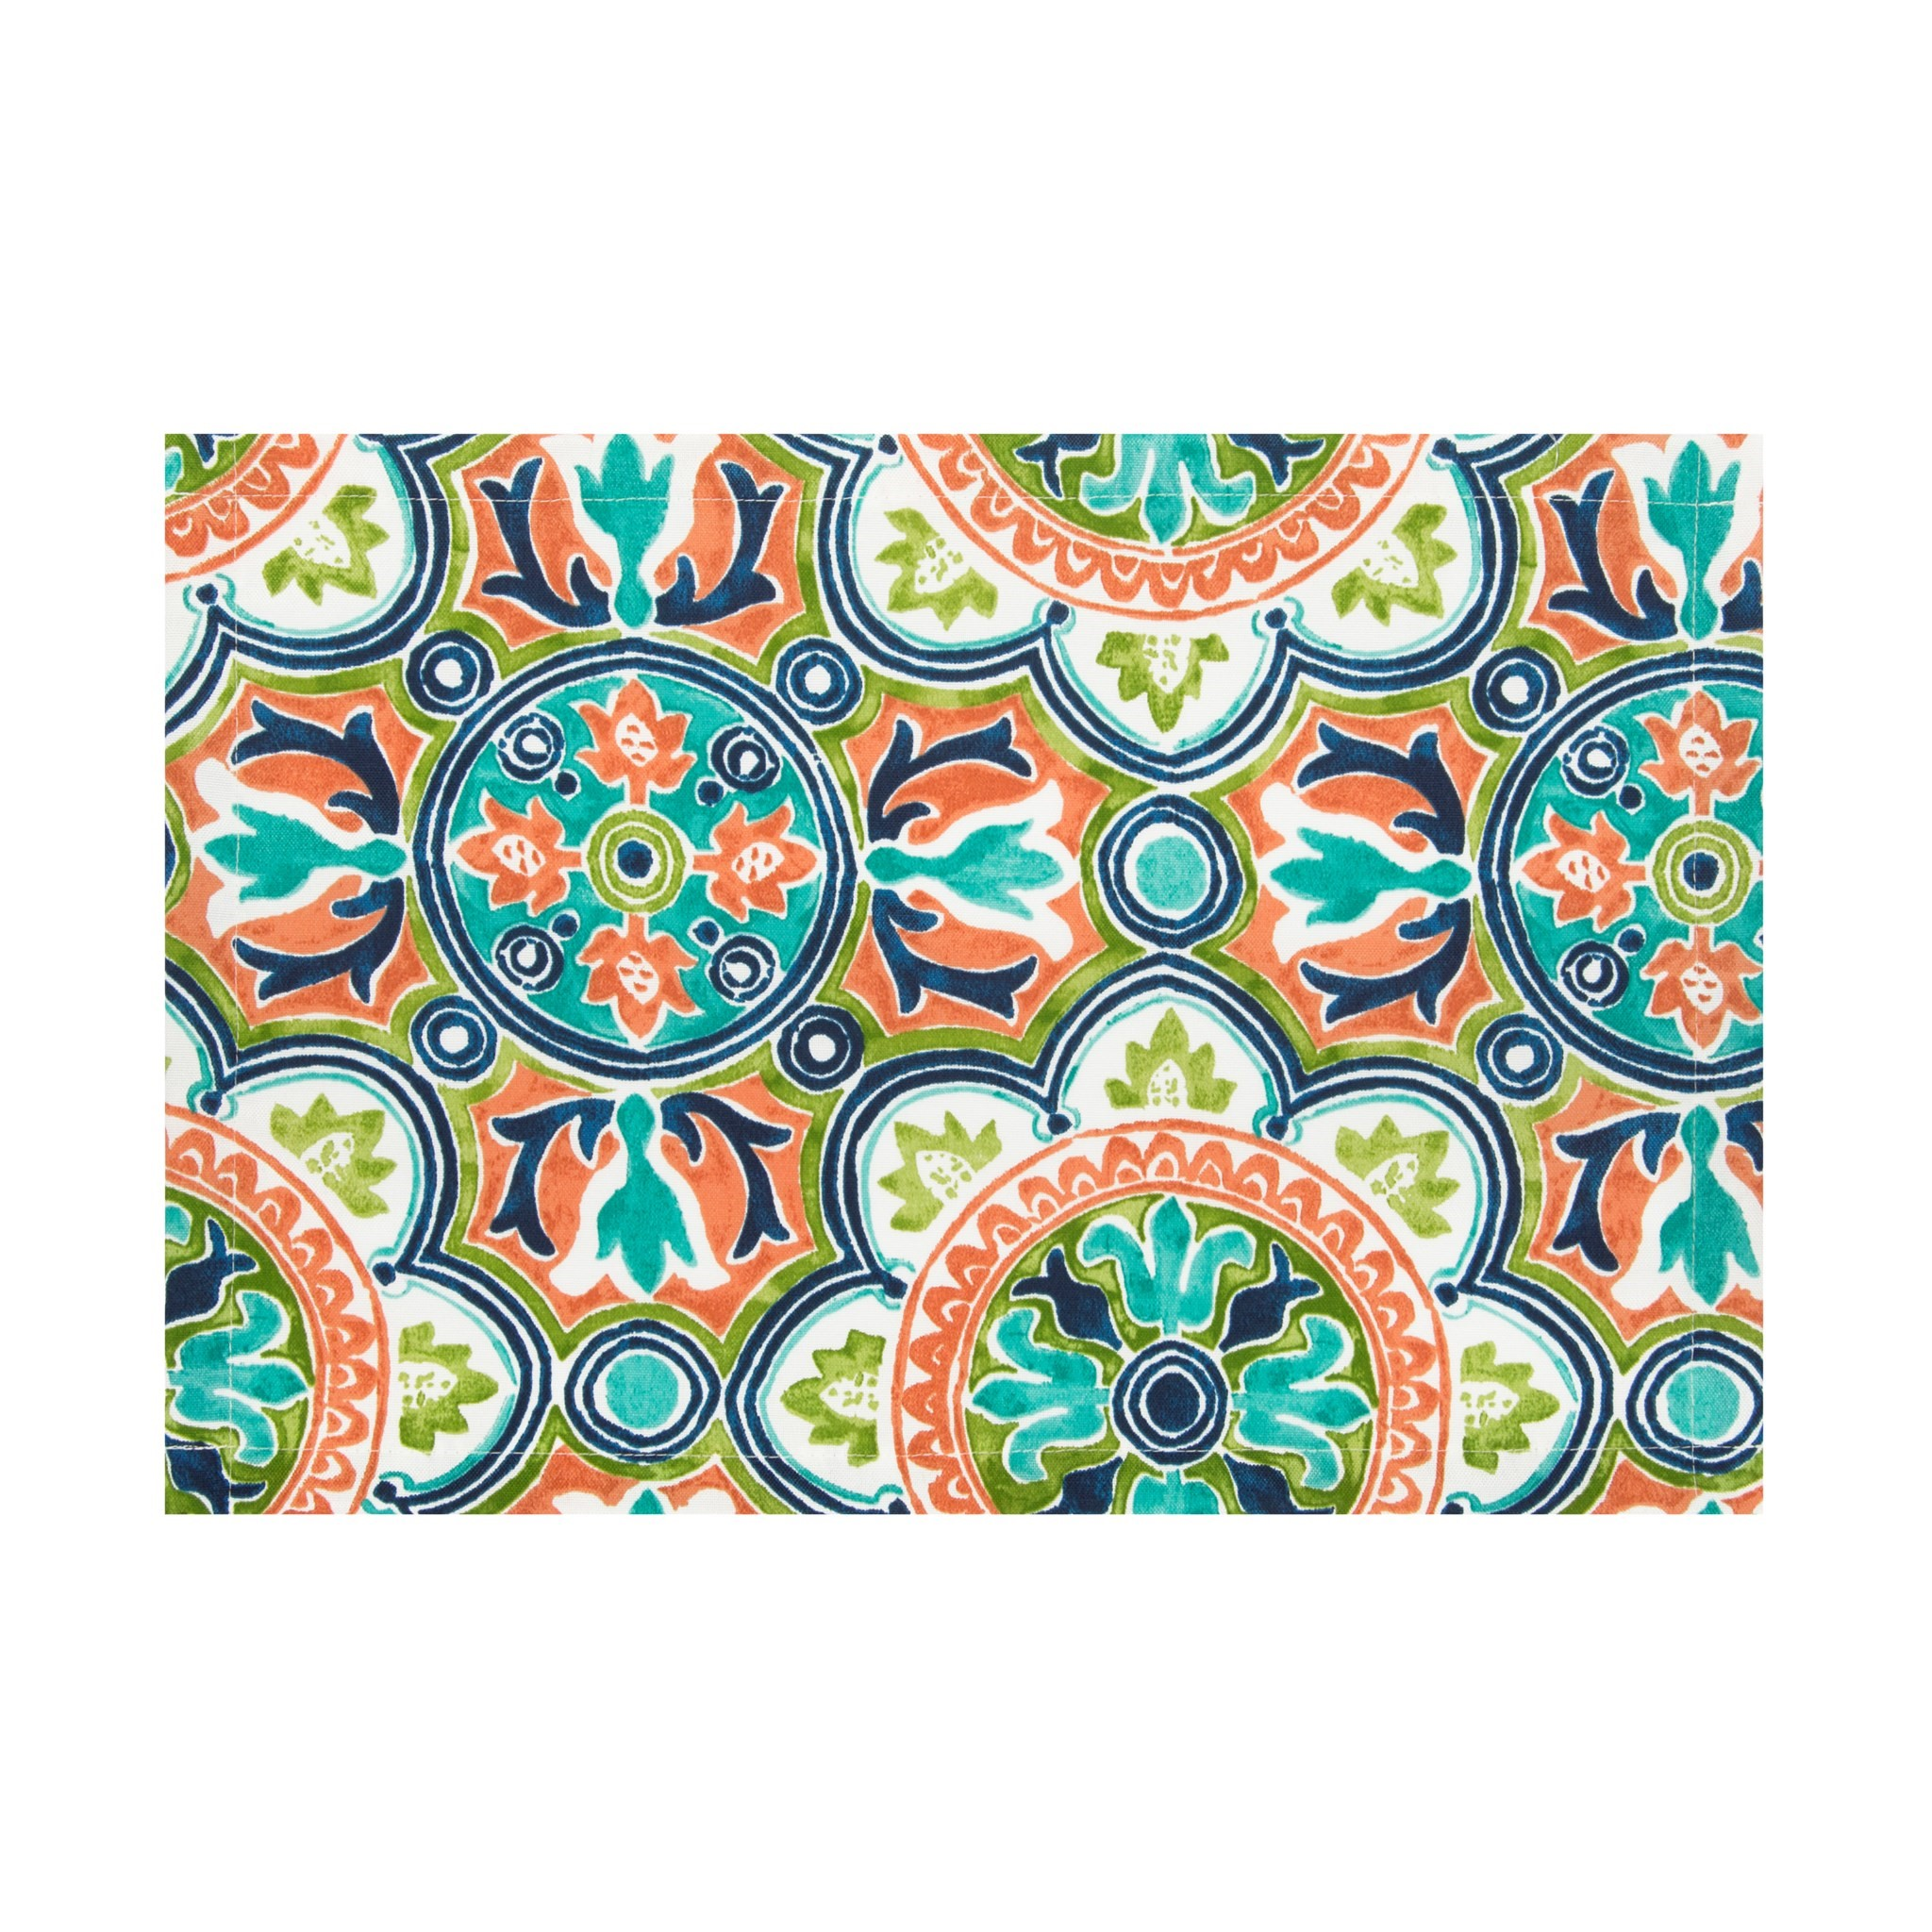 13x19 Placemat by Ninety-Five & Co, Amanda's House Of Elegance  (Special Order Only - With Purchase of any (1) Pair of Matching Pillows, Below)    ($22.95 - Set of 2)